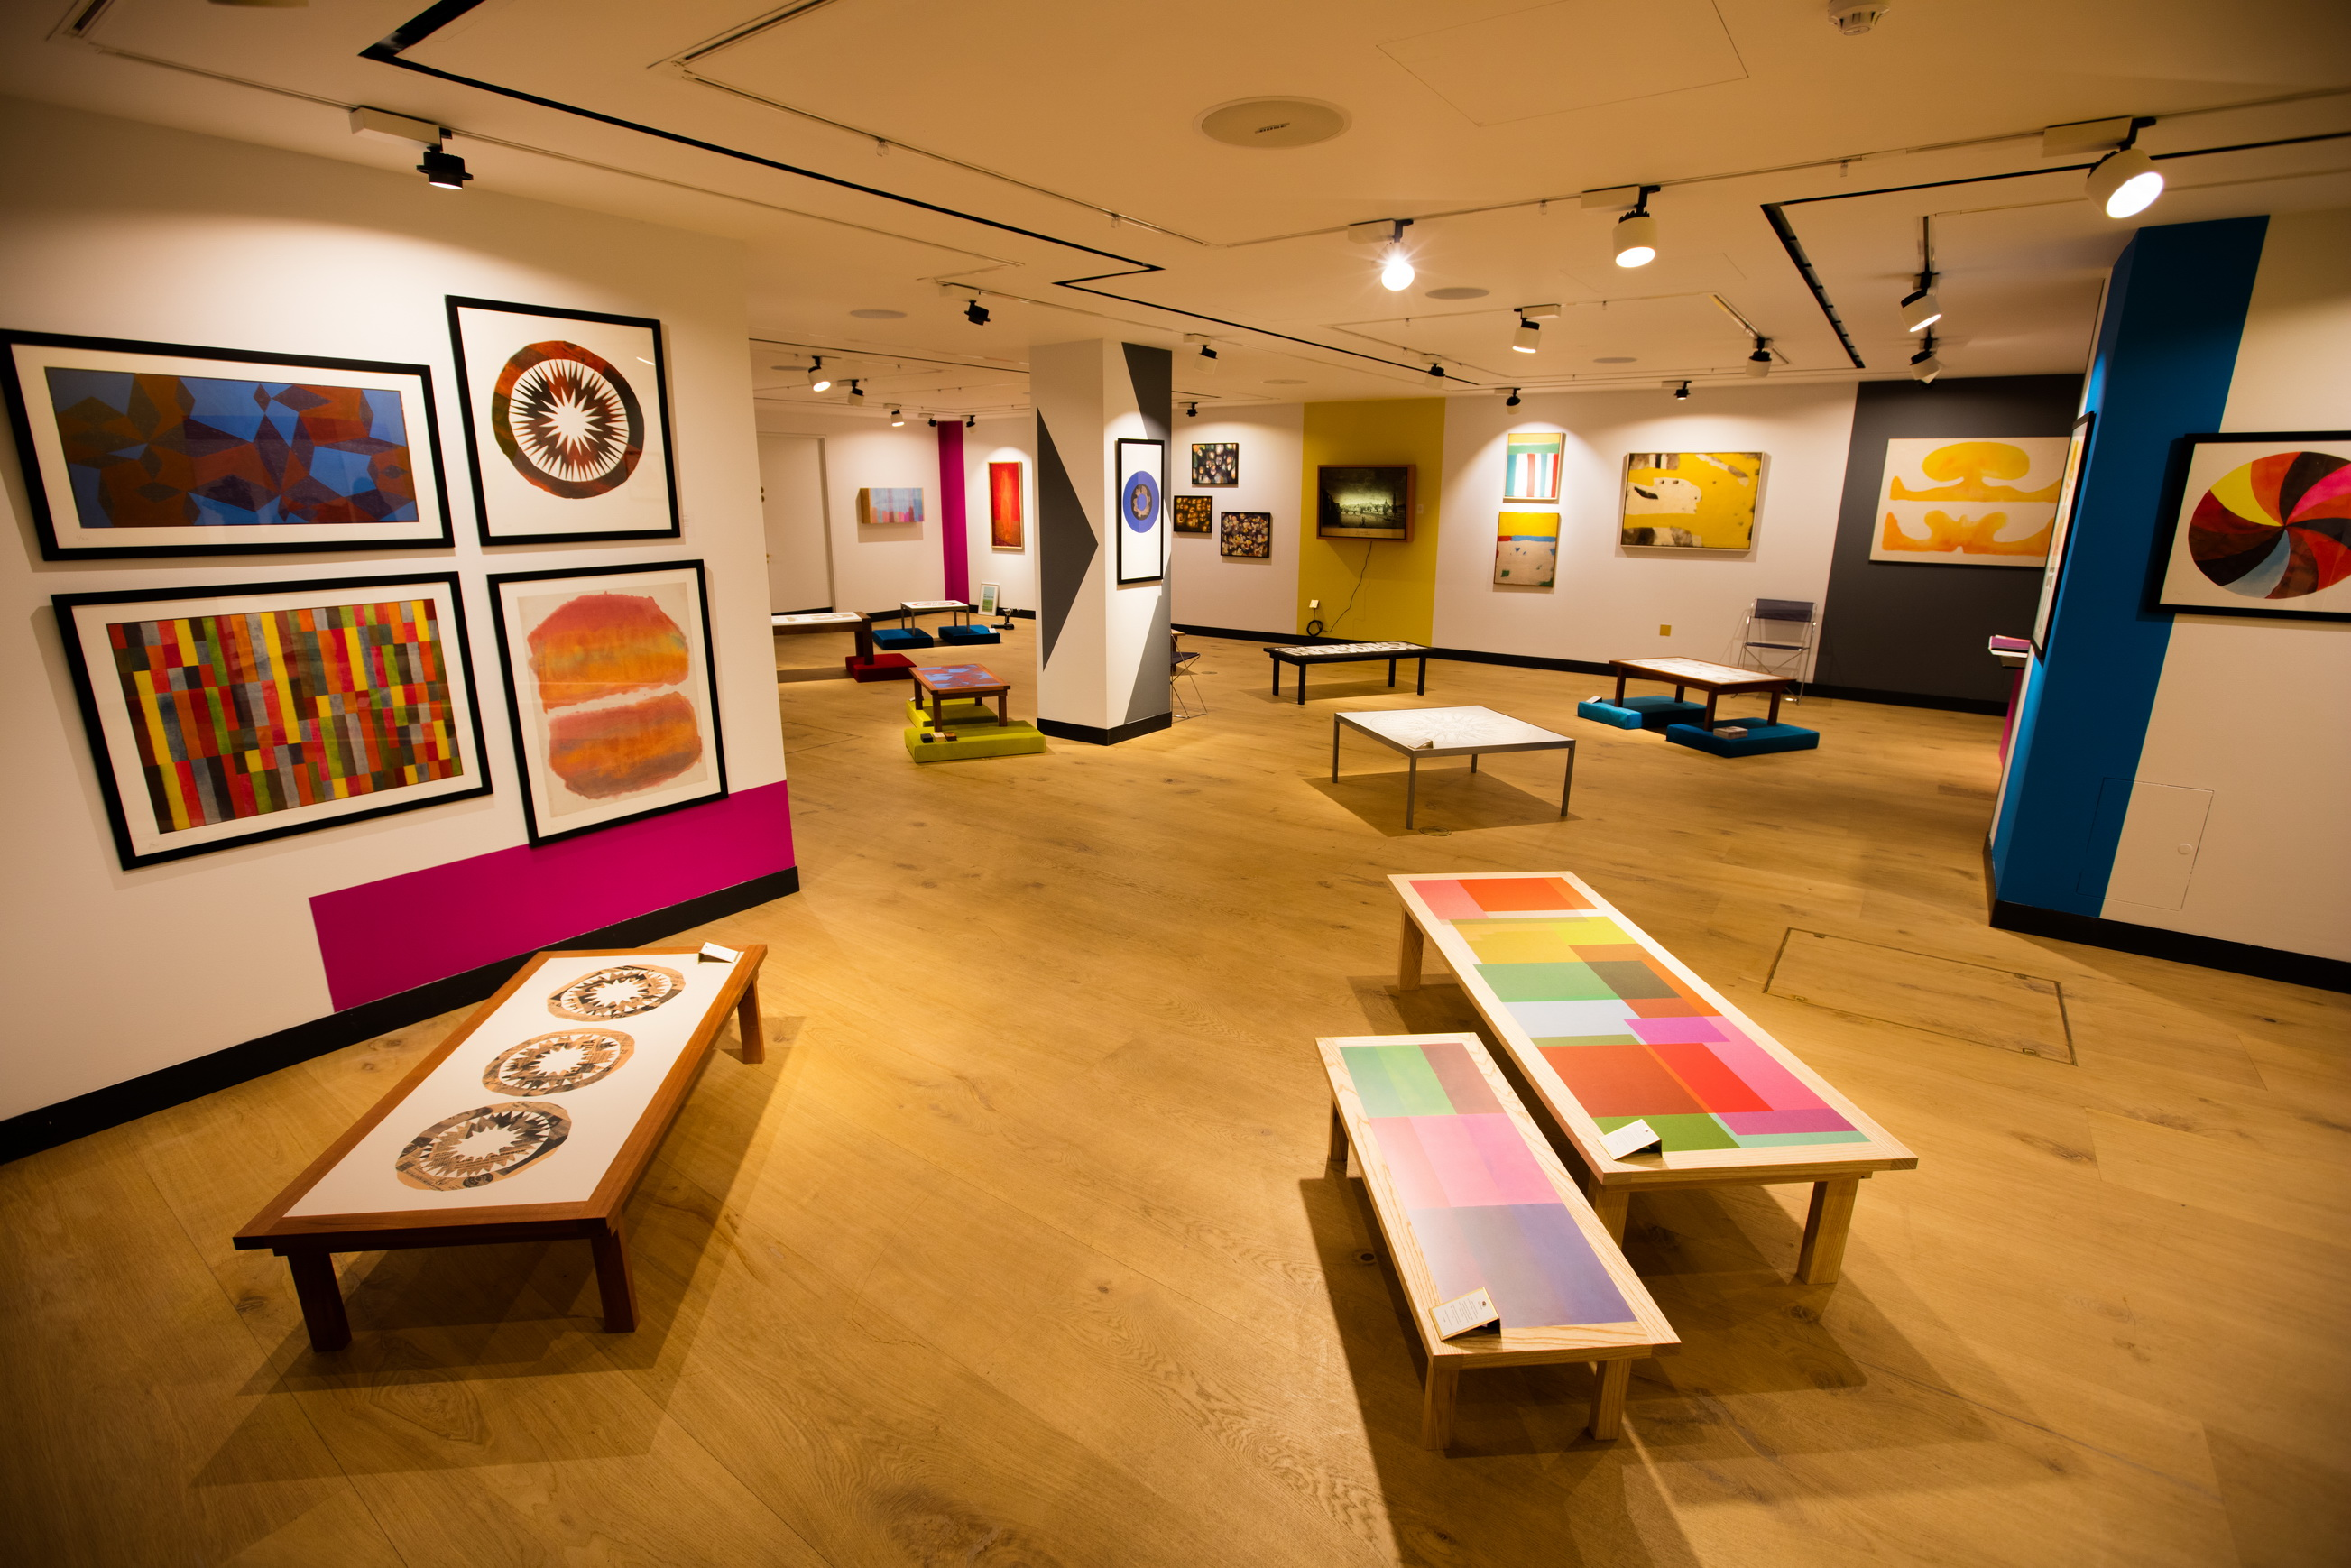 DANAD Design - The Art of Pop Design (1958-1962) at Paul Smith Gallery (4)